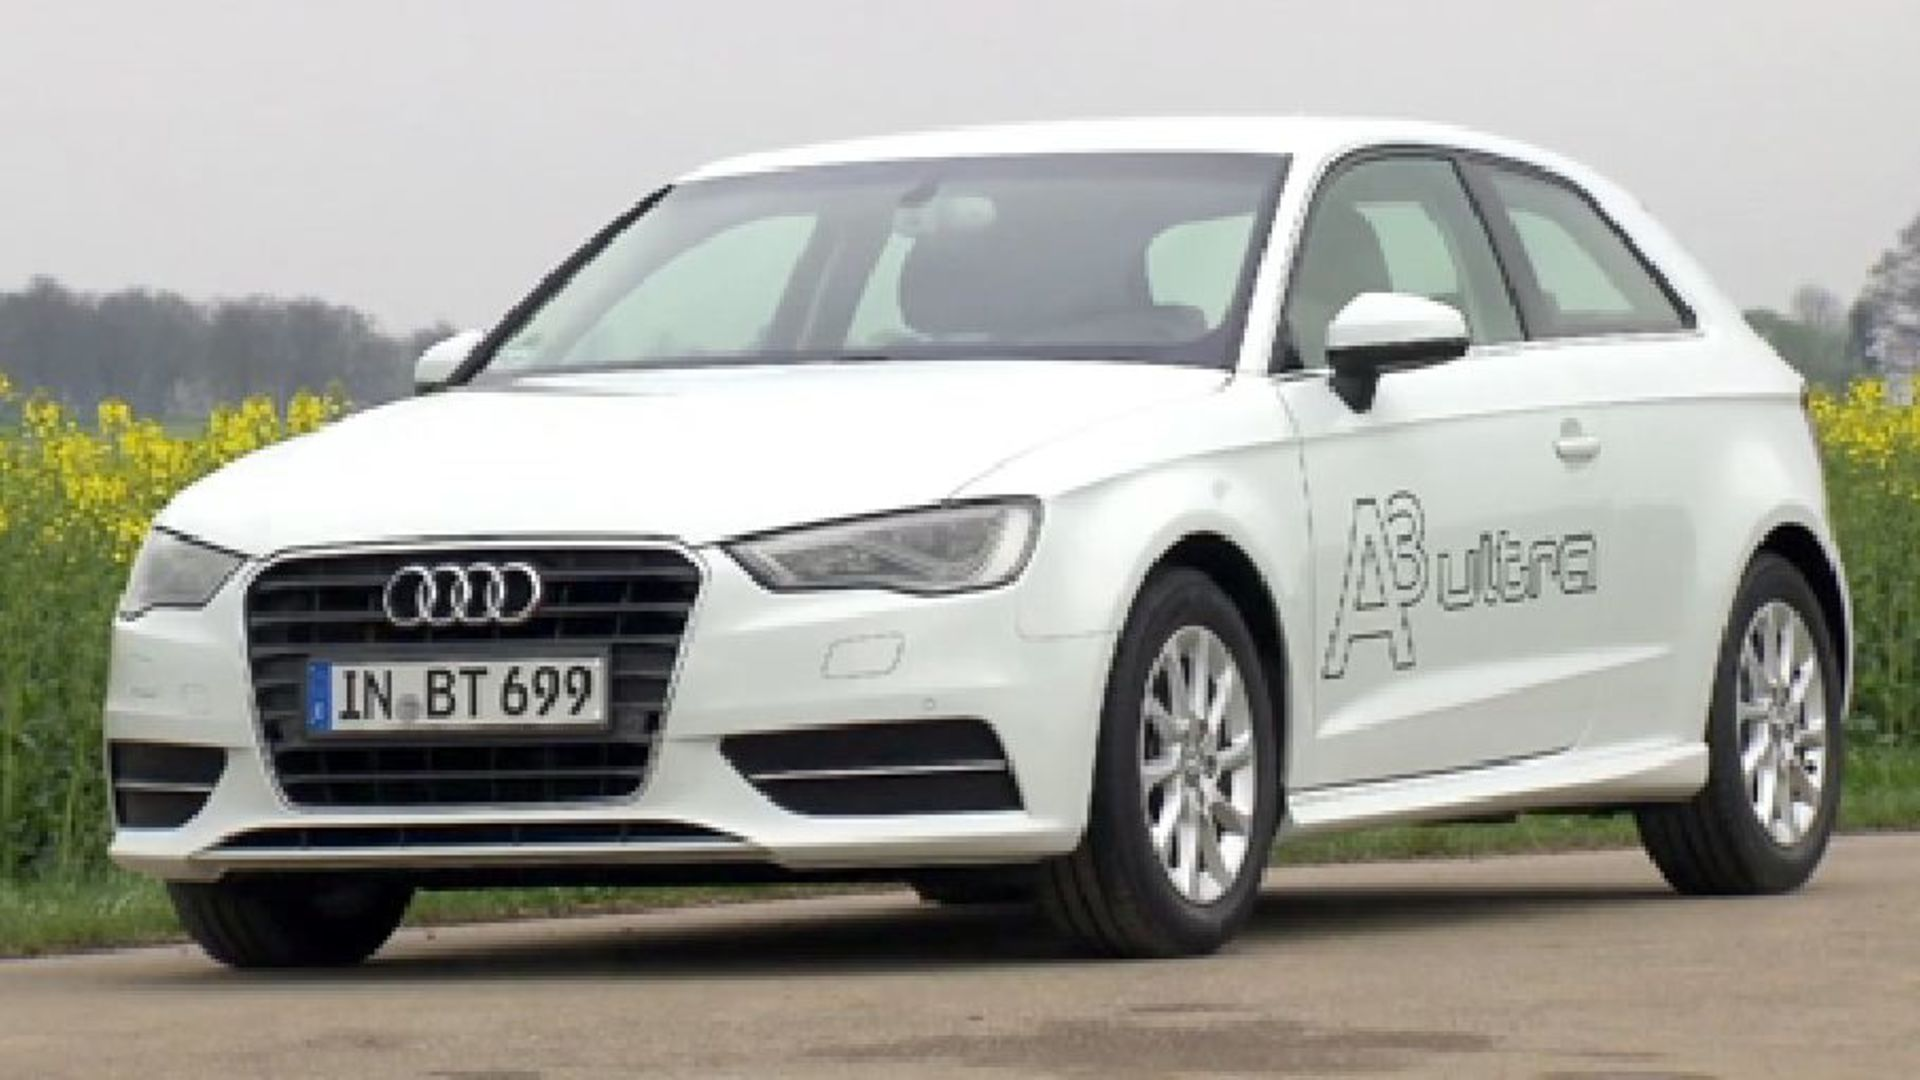 The Audi A3 ultra - Footage